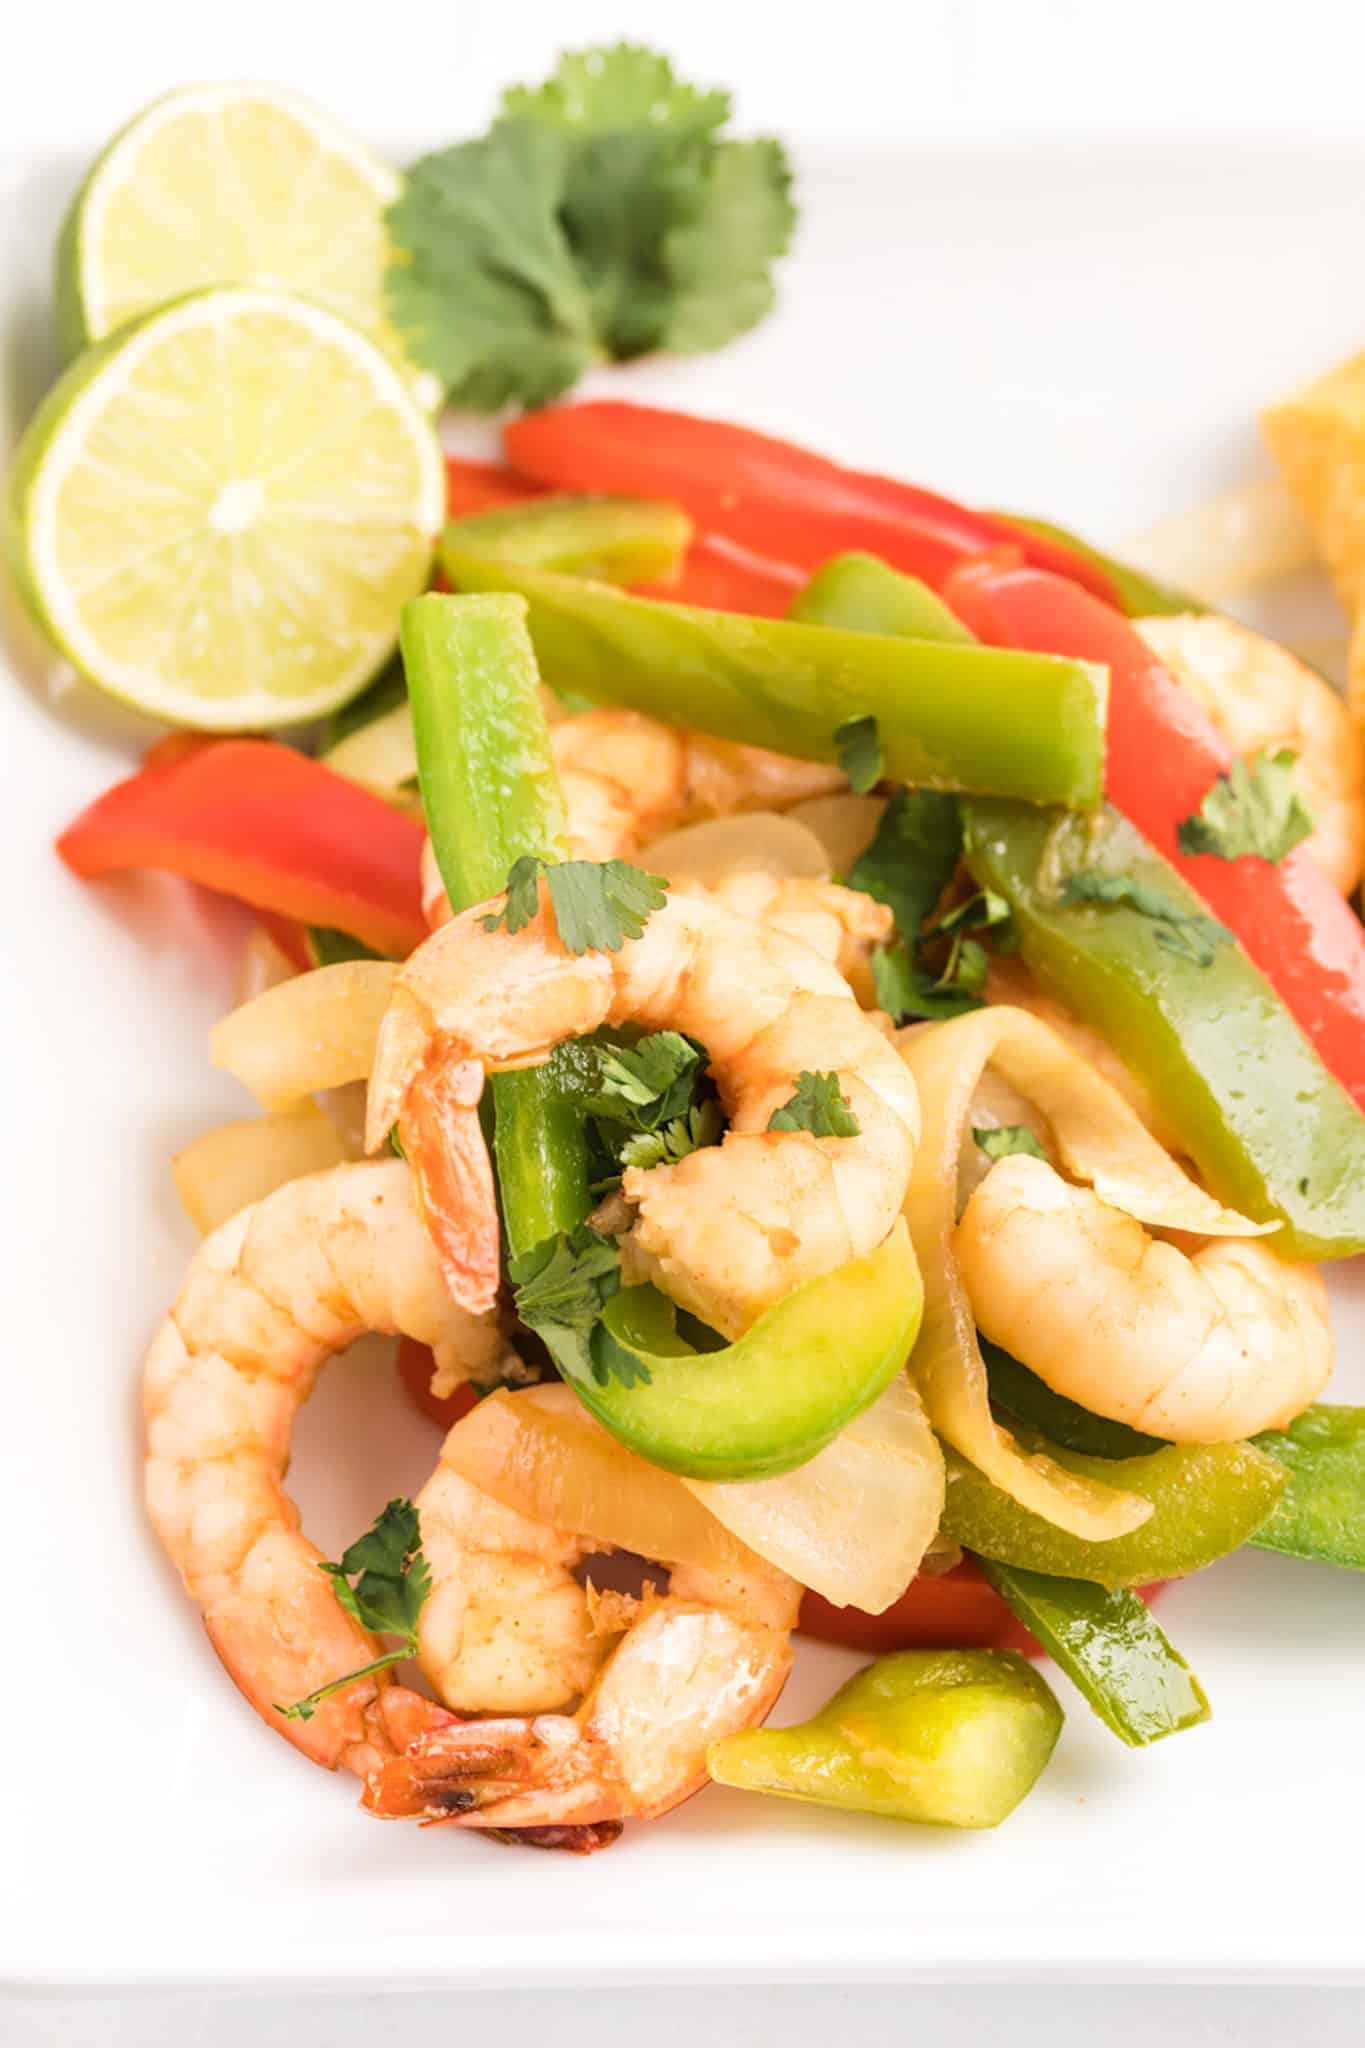 Sautéed shrimp and bell peppers with lime